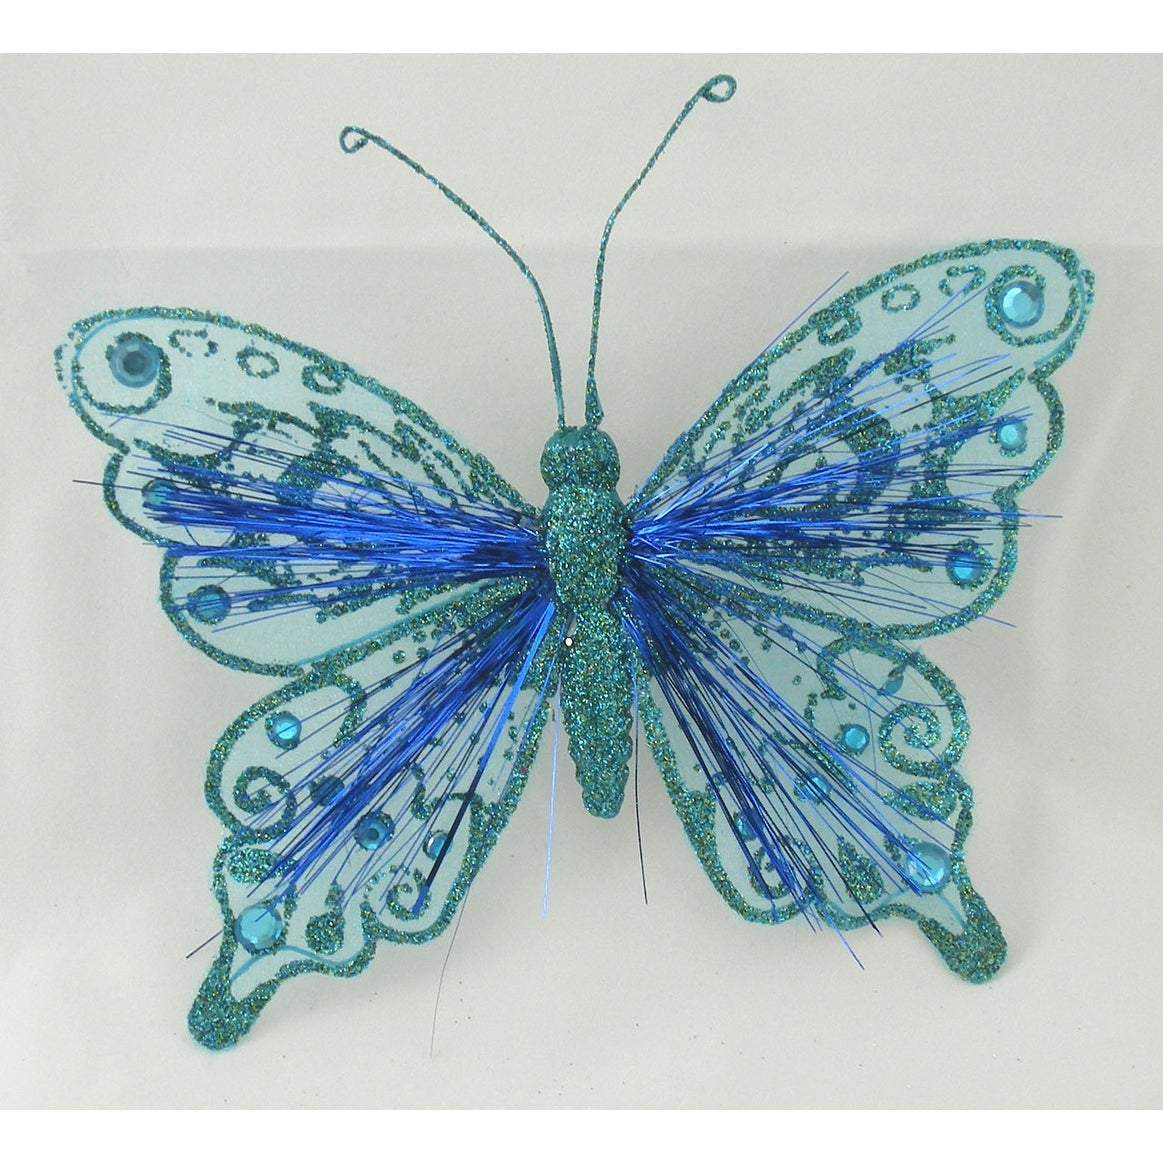 Factory Direct Craft Blue Glitter Tinsel Butterflies12 ButterfliesDesigned